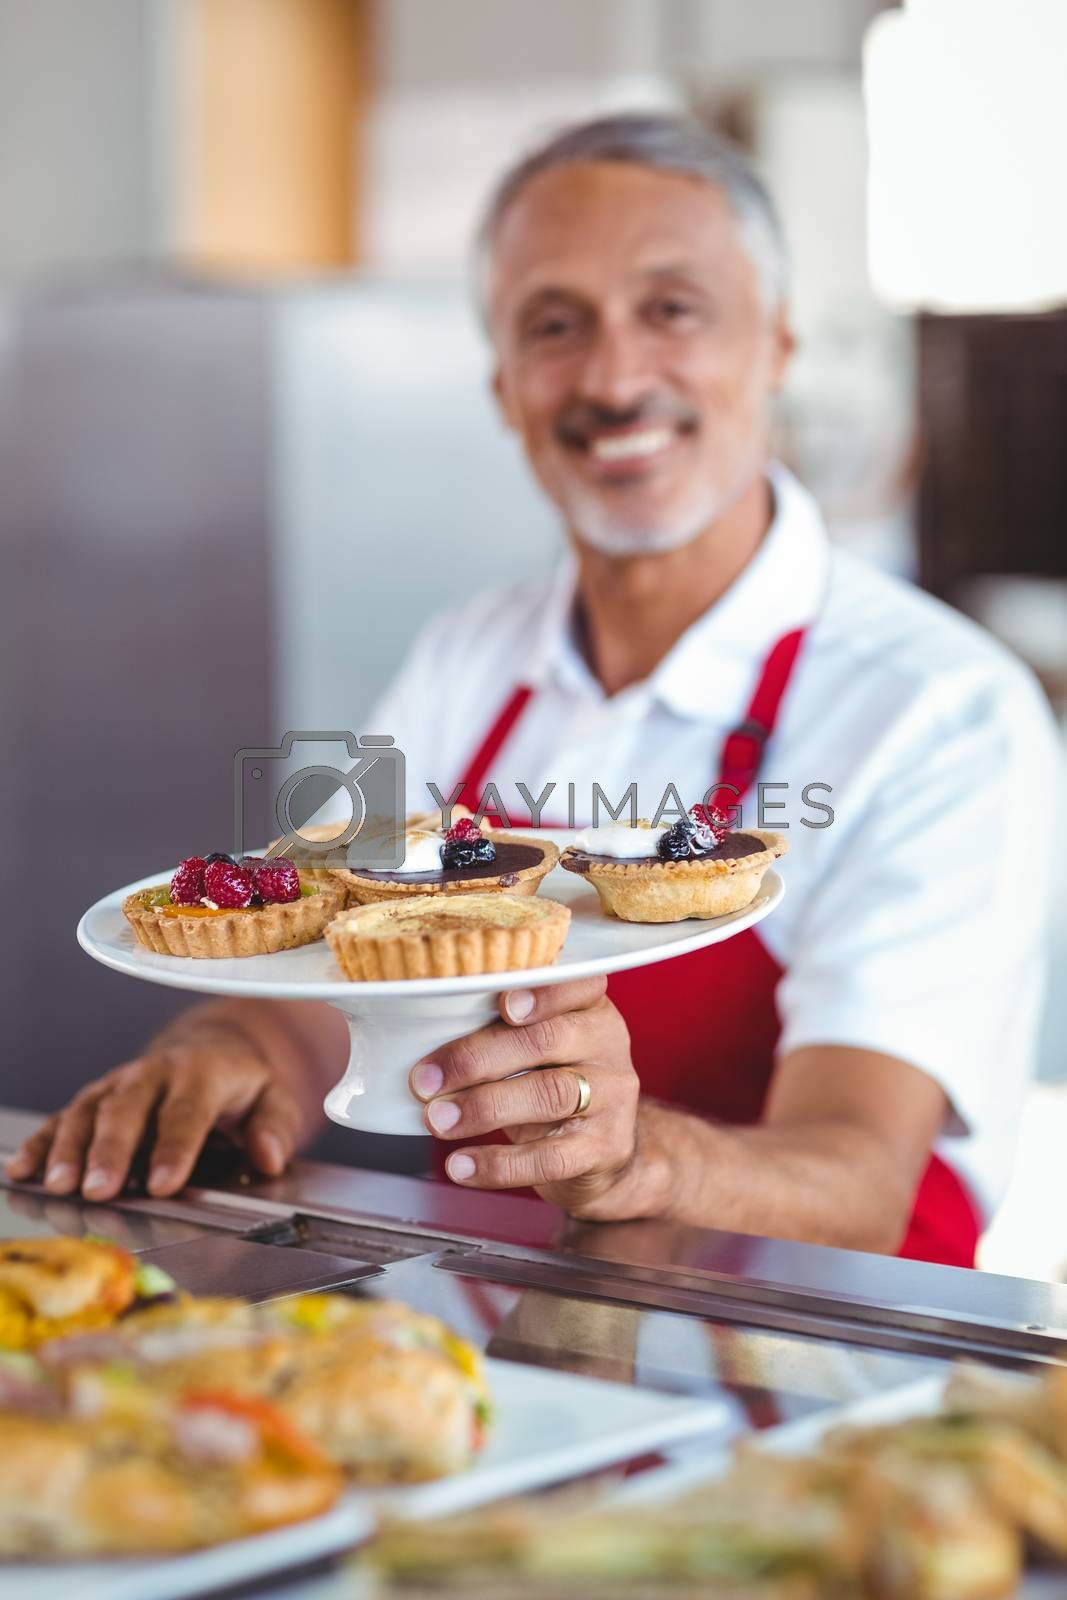 Royalty free image of Barista holding a plate of pastries by Wavebreakmedia